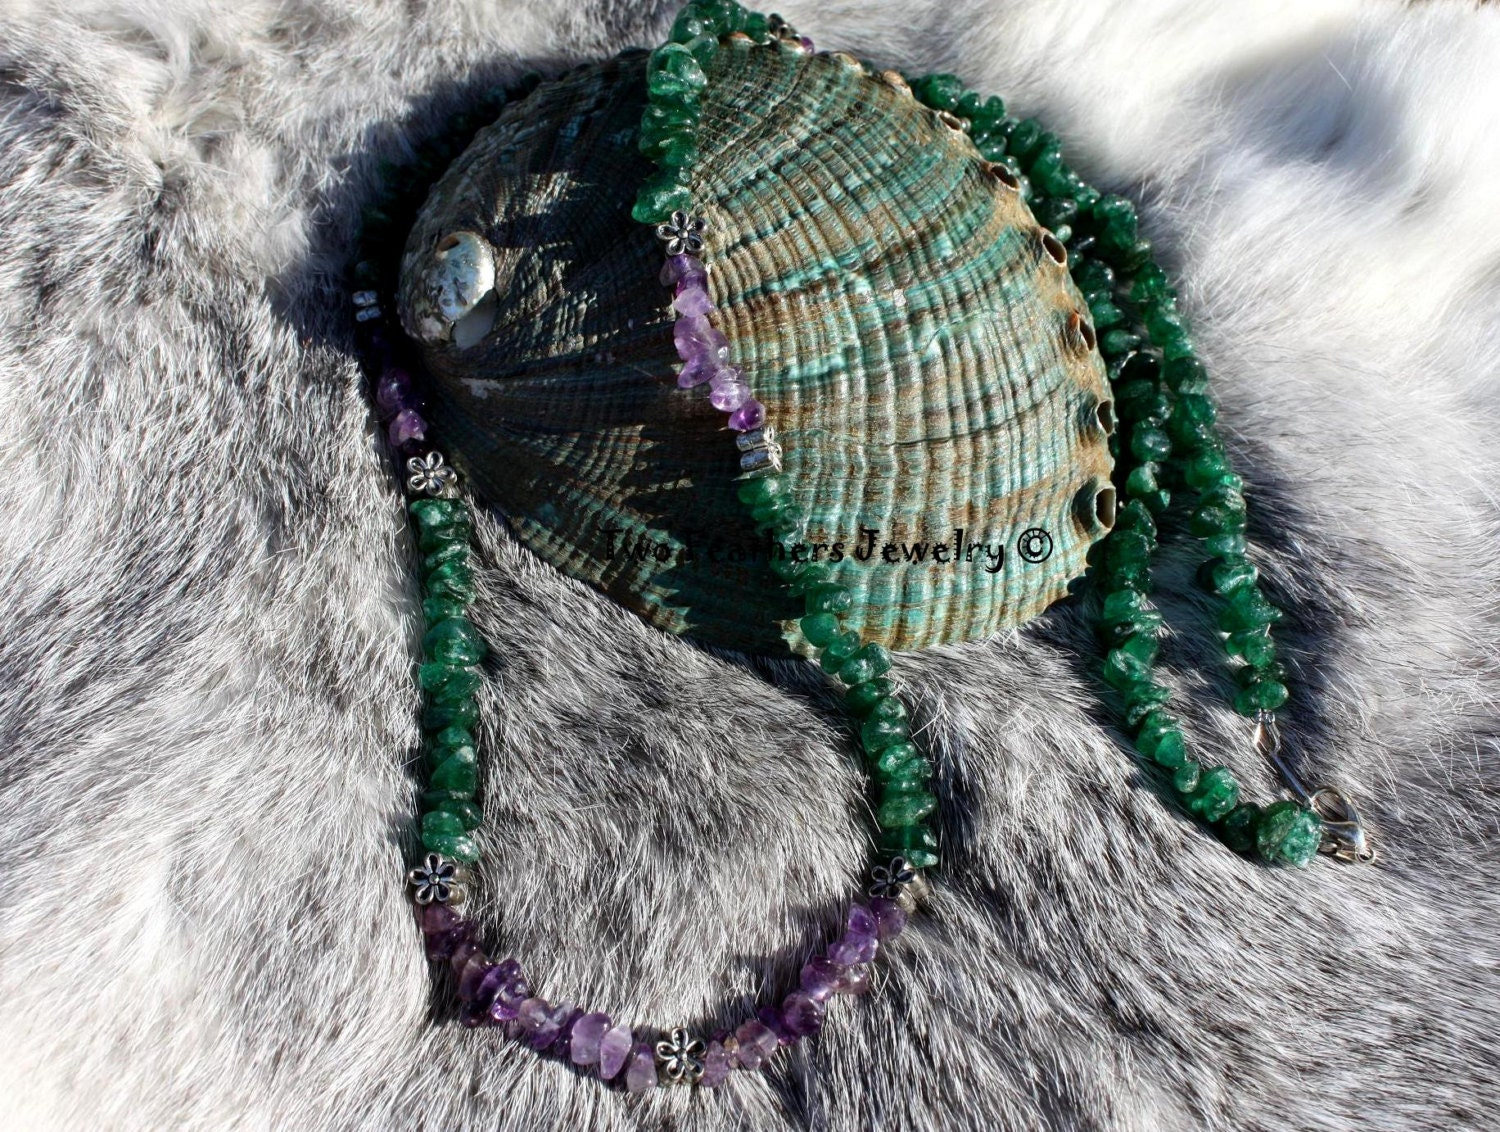 Wildflower Necklace - Amethyst Necklace - Green Aventurine - Green And Purple - Gemstone Necklace - Gift For Her - Nature Inspired - Natural - TwoFeathersJewelry